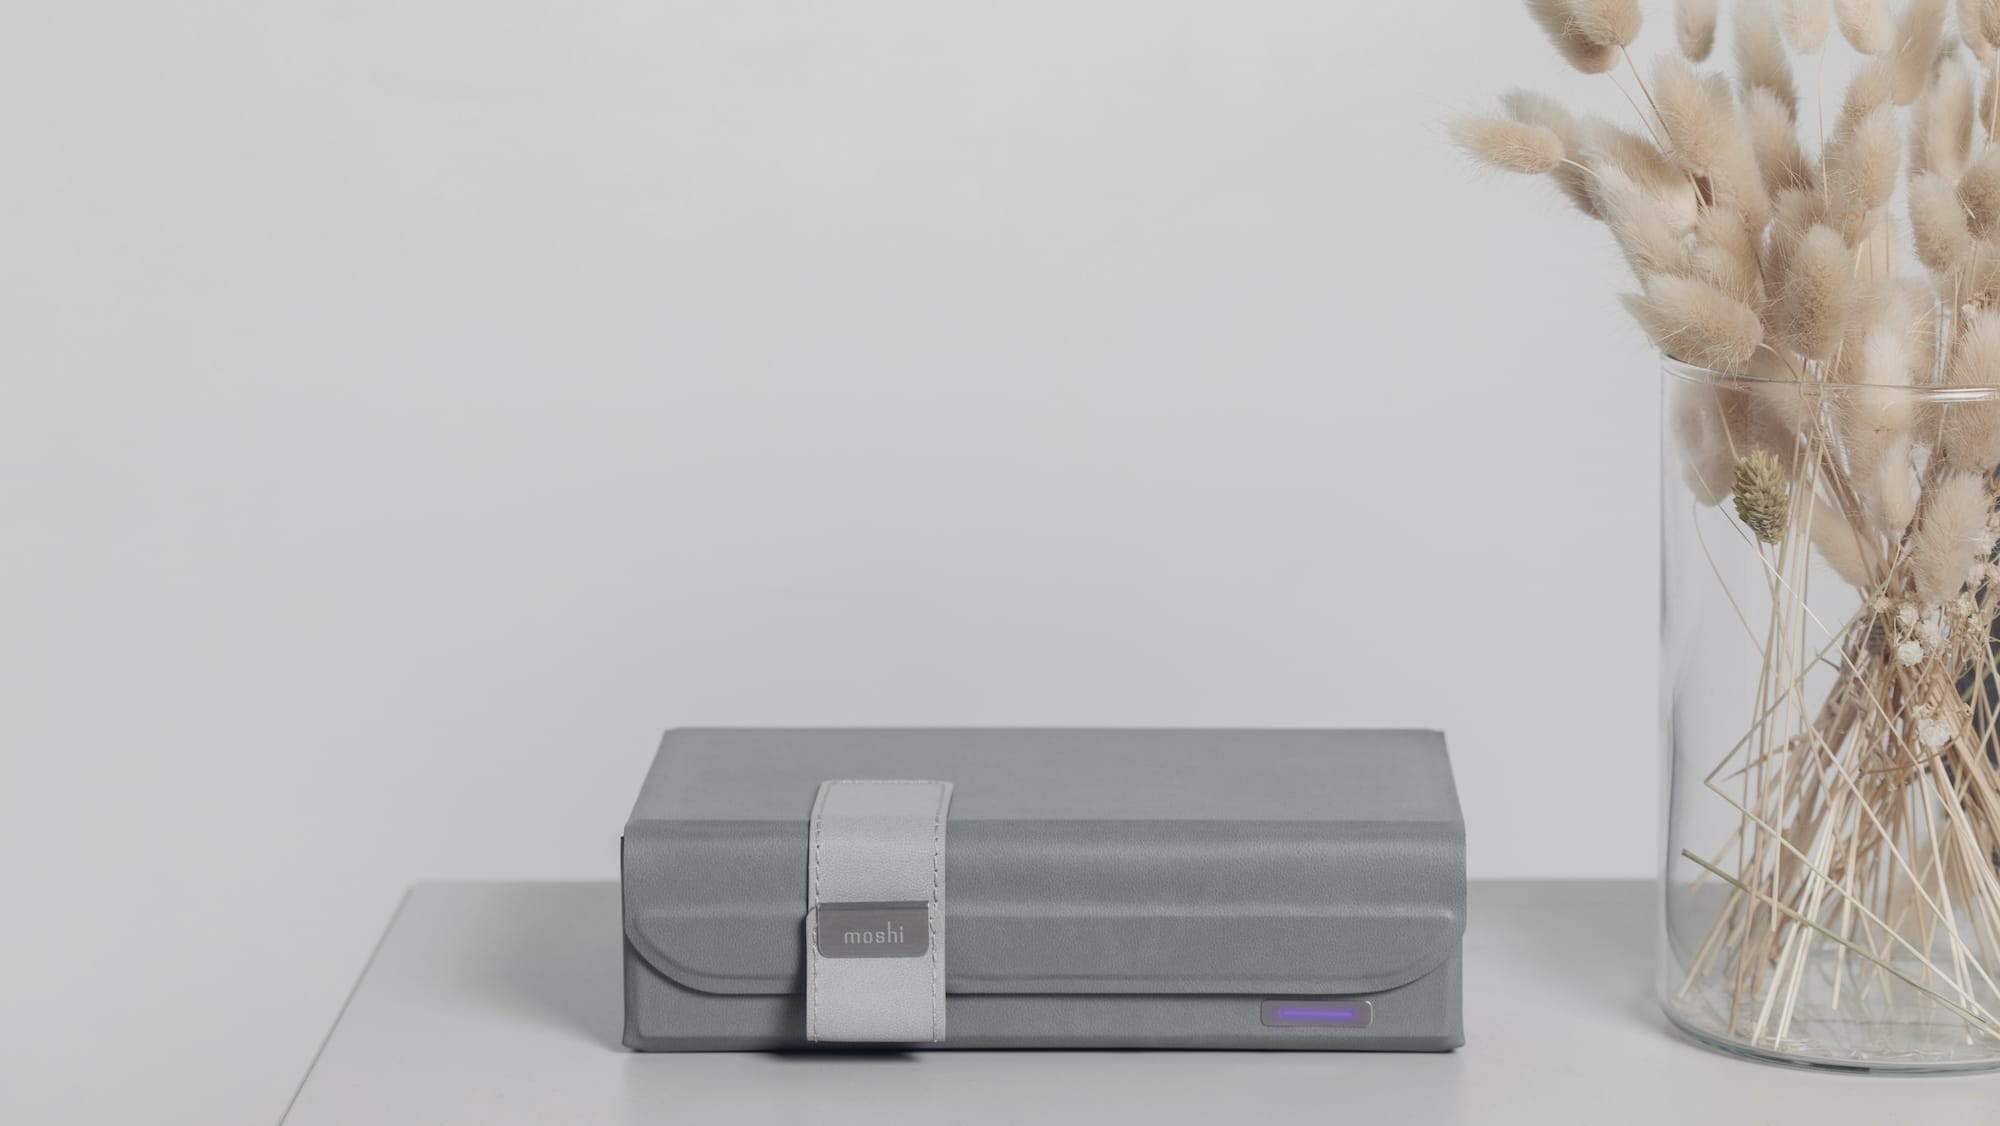 Moshi Deep Purple™ origami-inspired UV sanitizer cleans in 4 minutes and folds in seconds